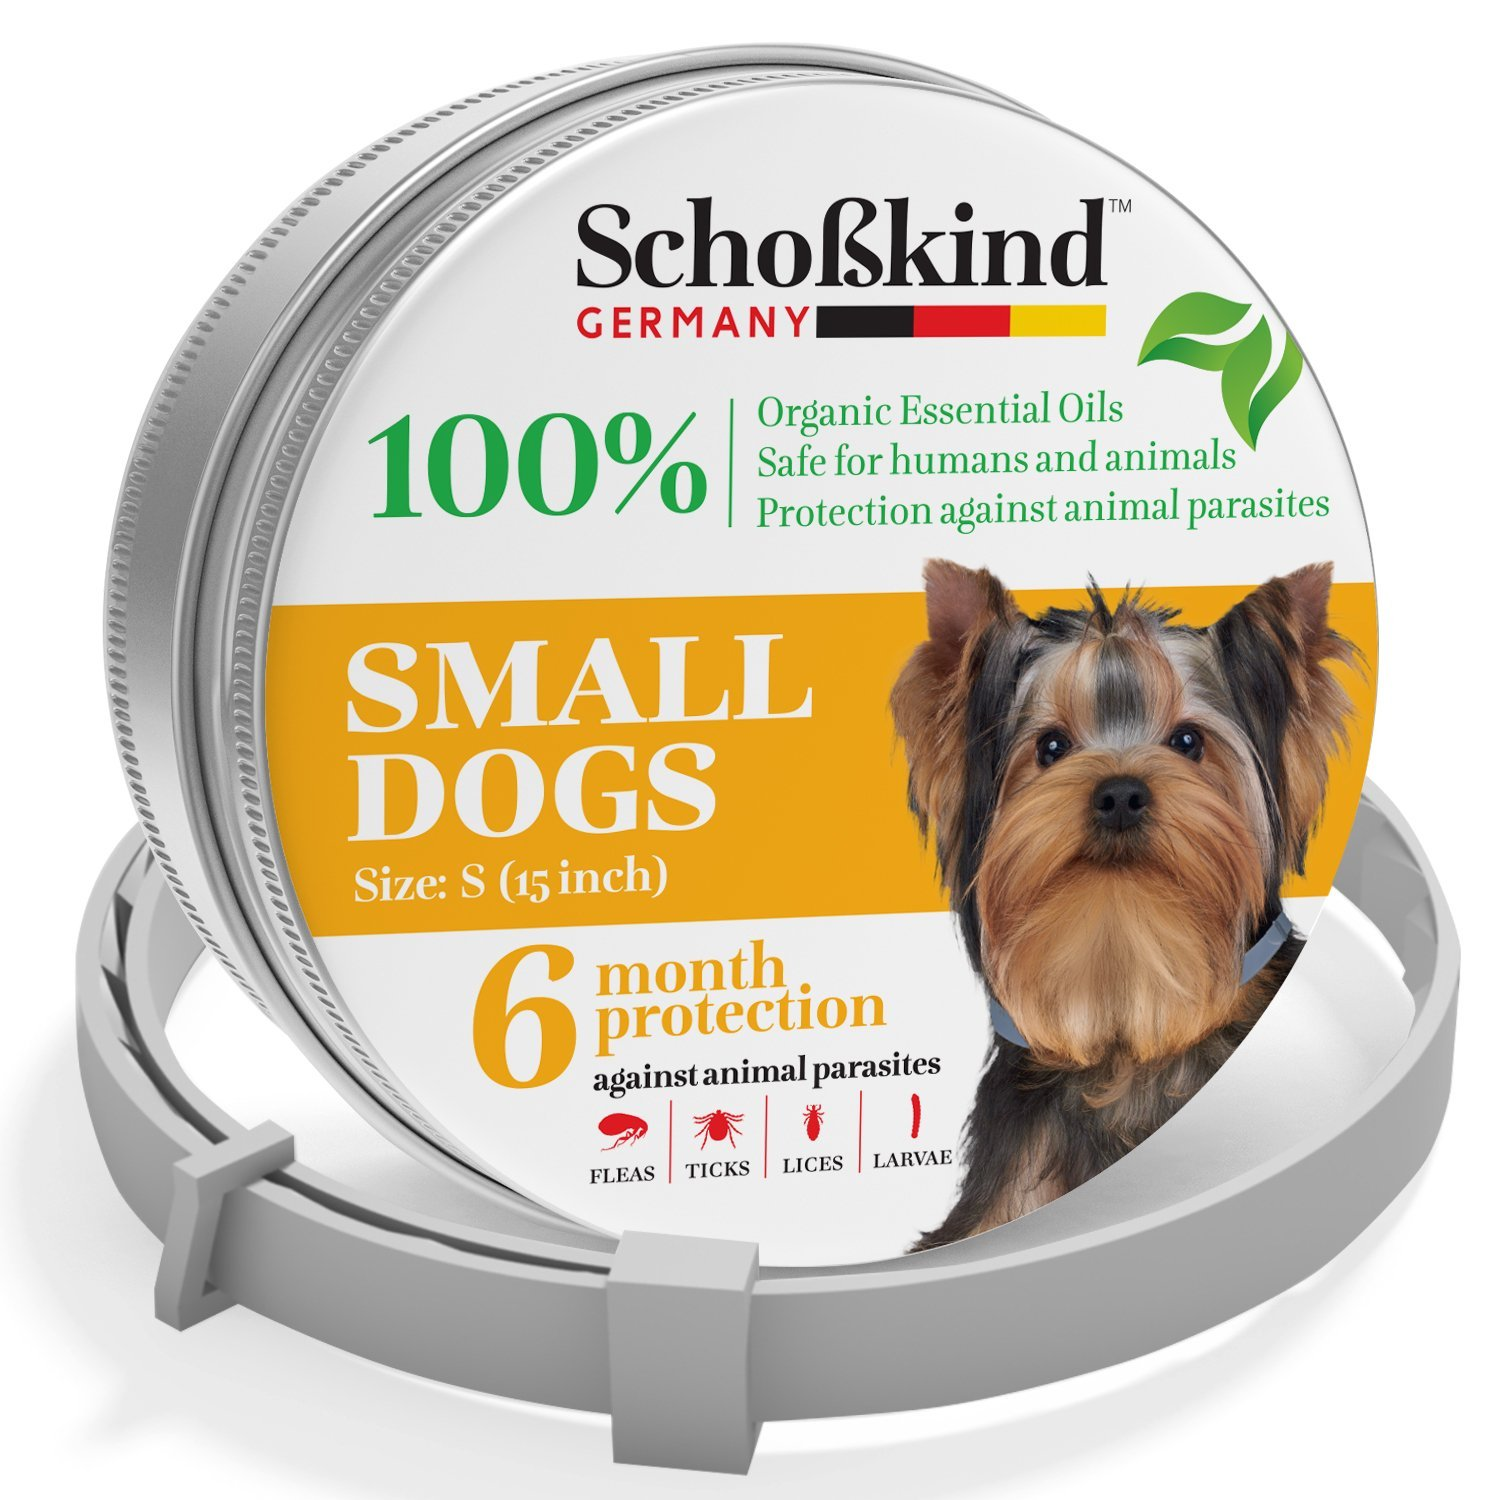 Flea and Tick Collar for Dogs - Made for Germany - 100% Safe & Eco-Friendly – Based on Natural Oils - Flea and Tick Prevention - All Sizes Pets - 6-Month Protection – Waterproof Dog Flea Collar